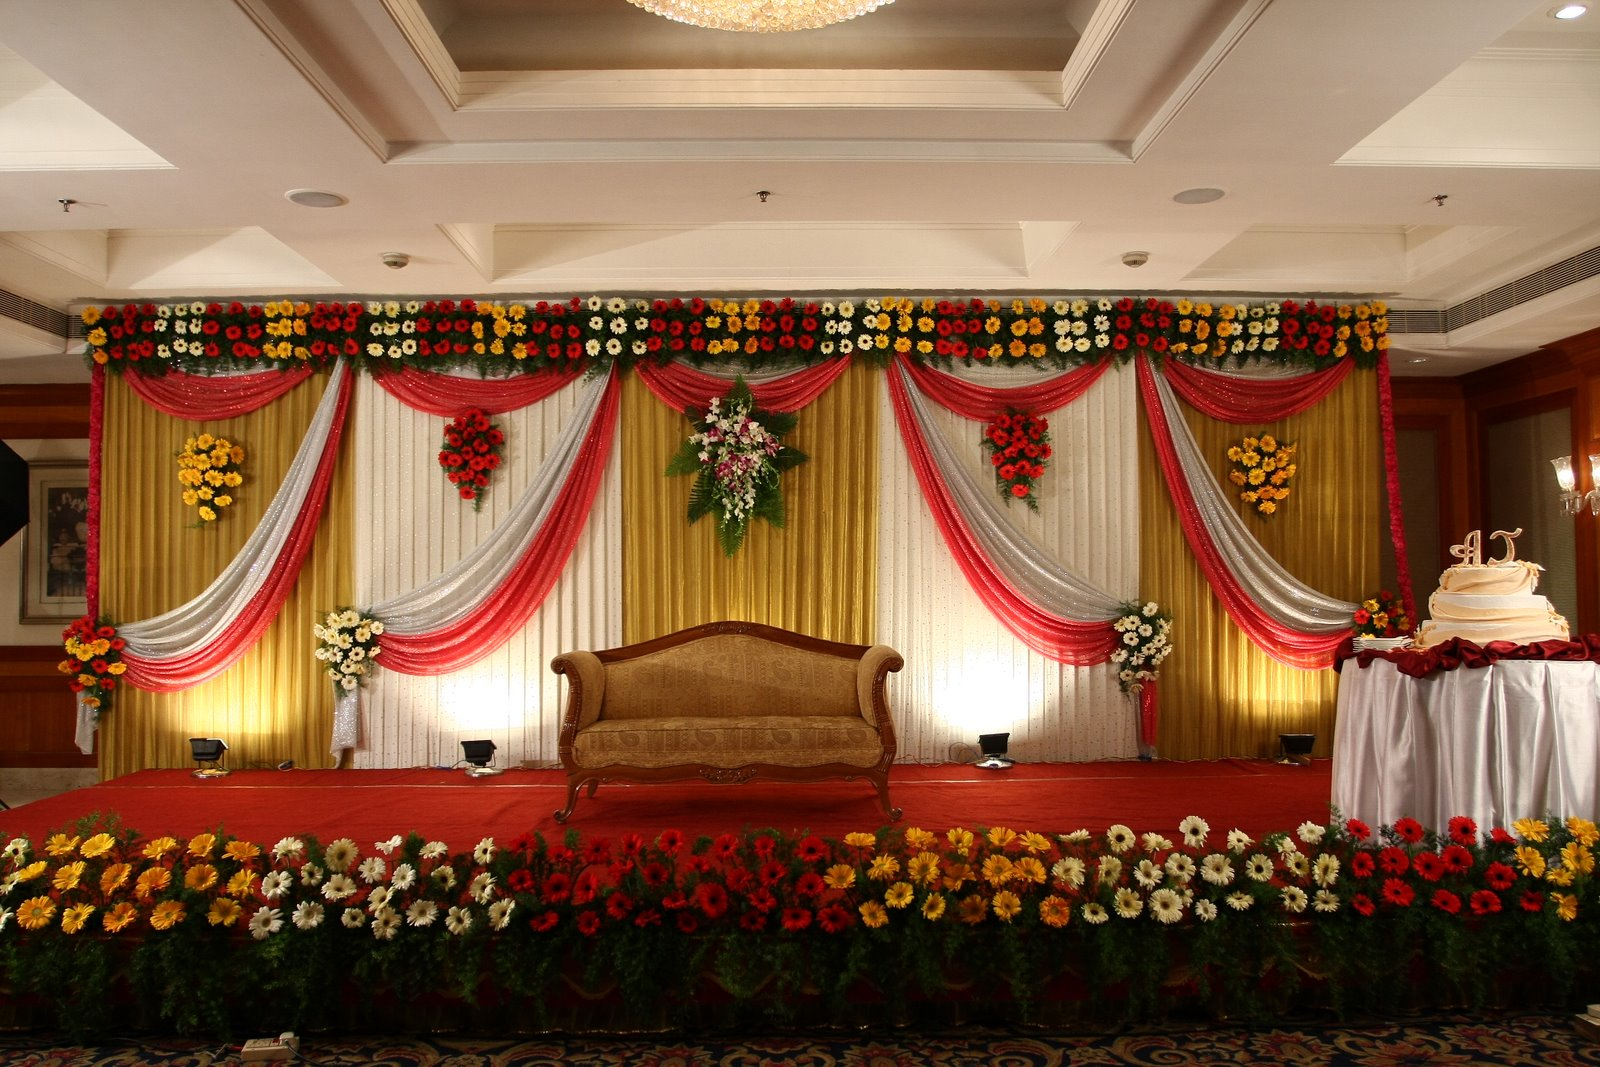 About marriage marriage decoration photos 2013 marriage stage decoration ideas 2014 Home wedding design ideas